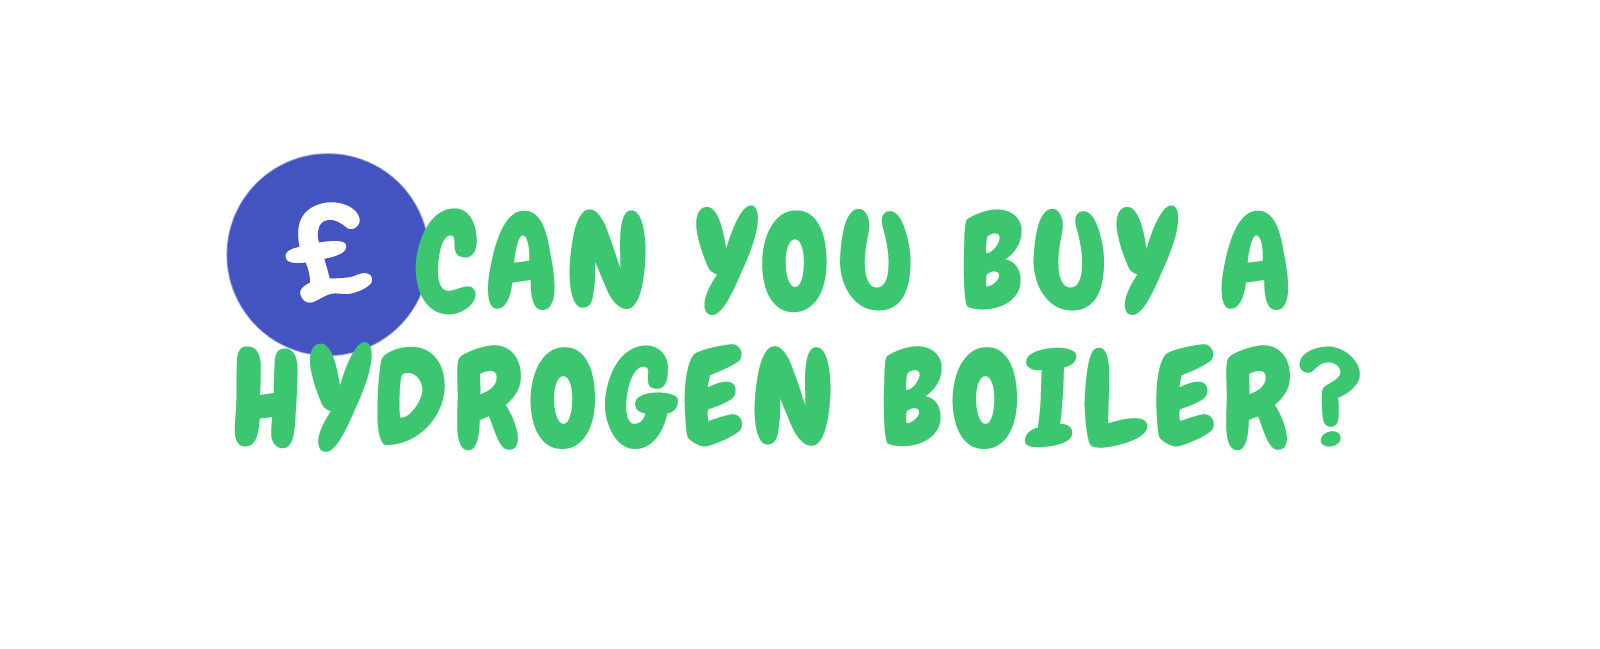 Can You Buy A Hydrogen Boiler?